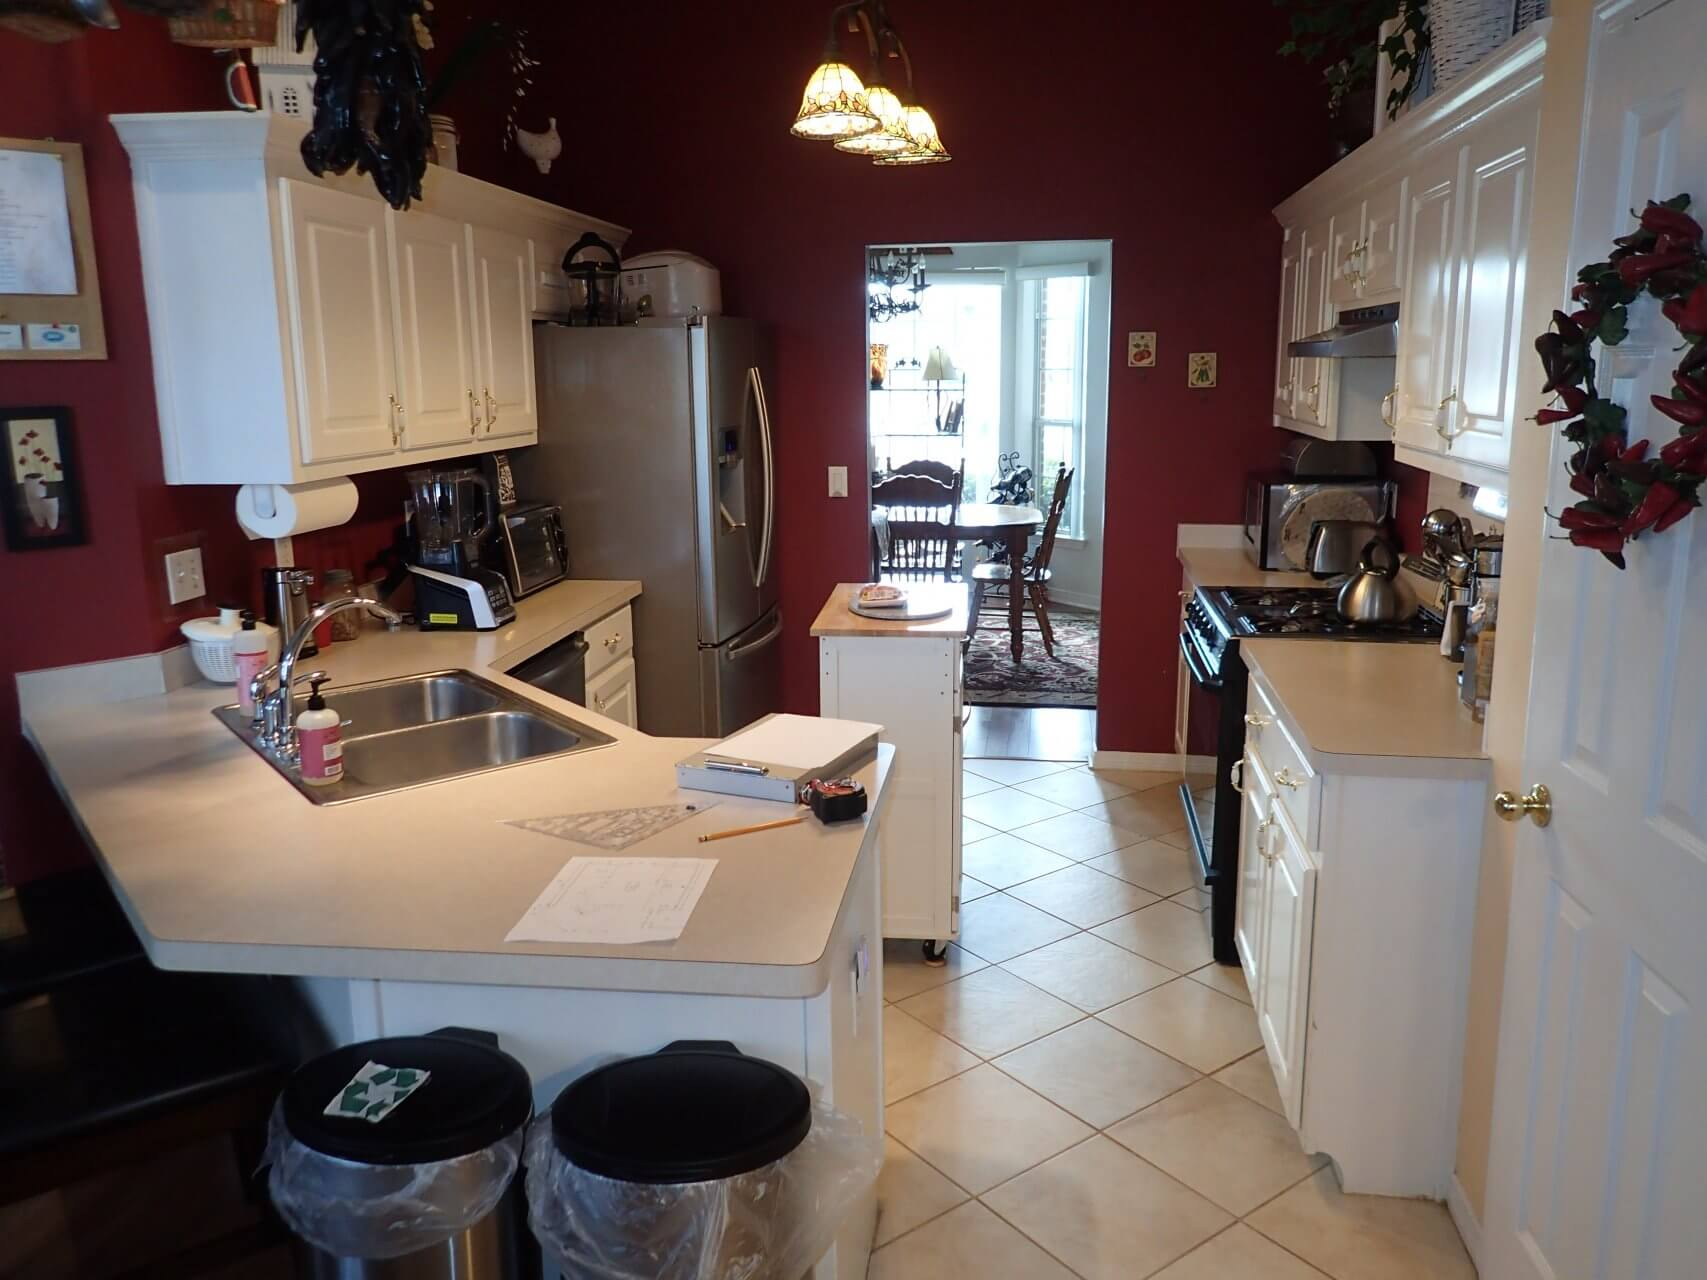 Before: Enclosed kitchen